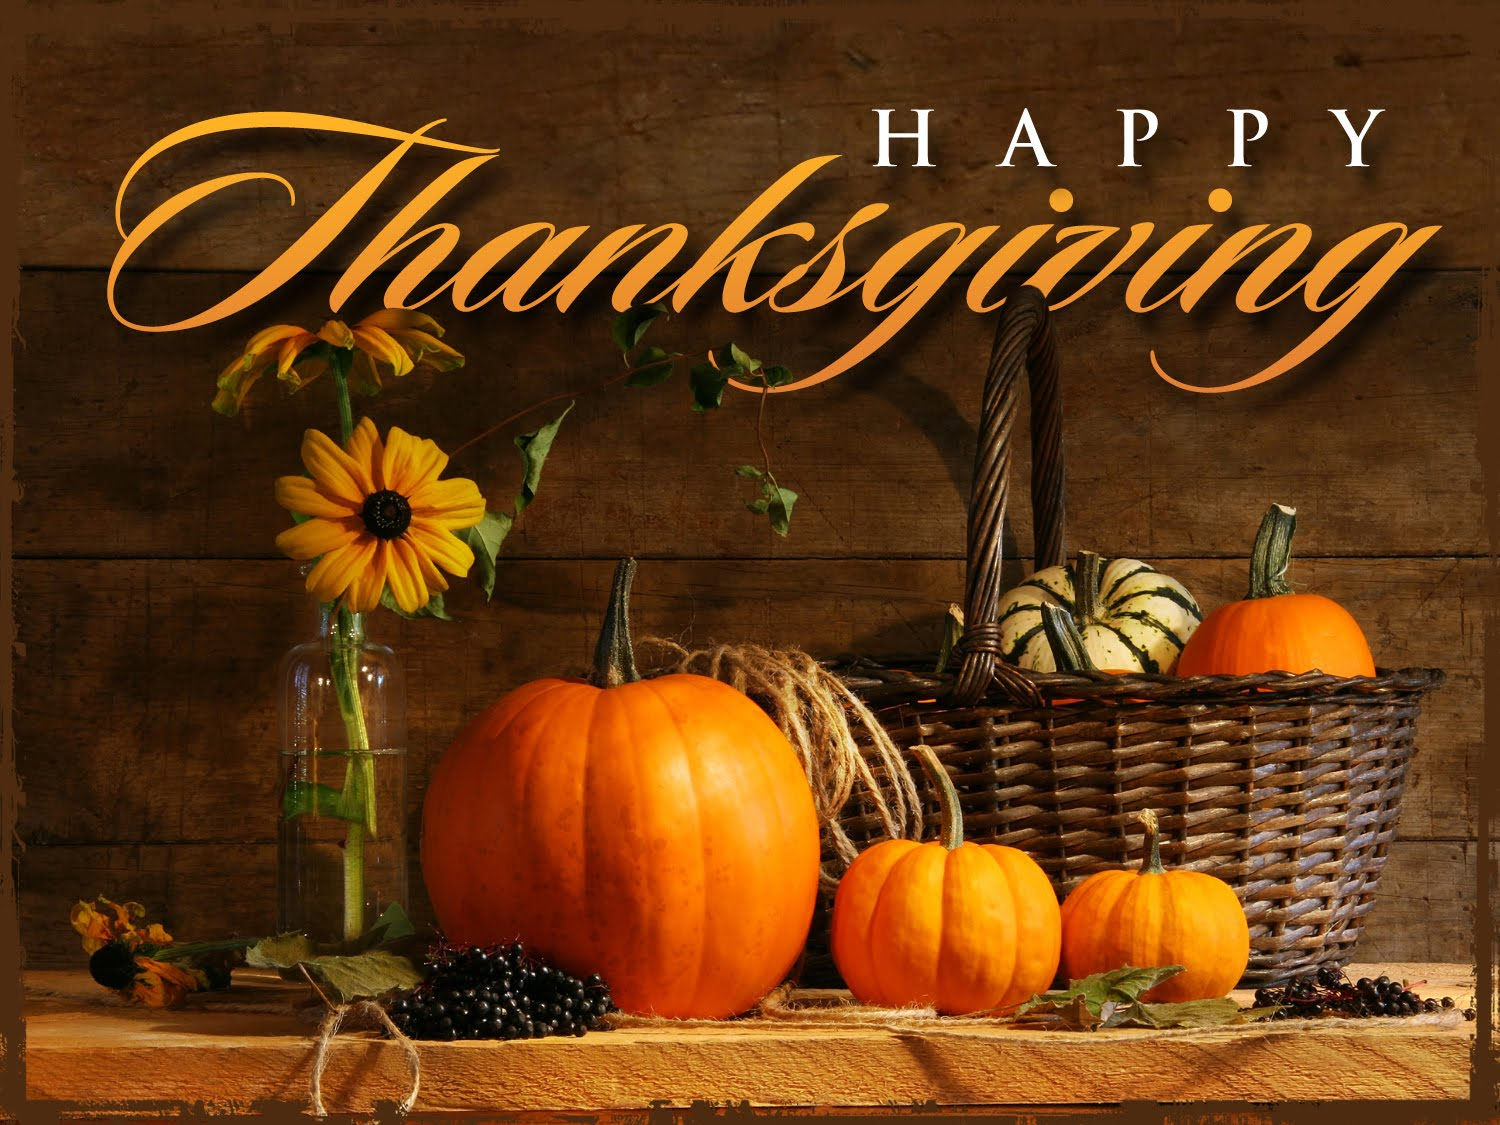 Happy Thanksgiving >> A Lean Journey Happy Thanksgiving Take A Moment To Be Thankful